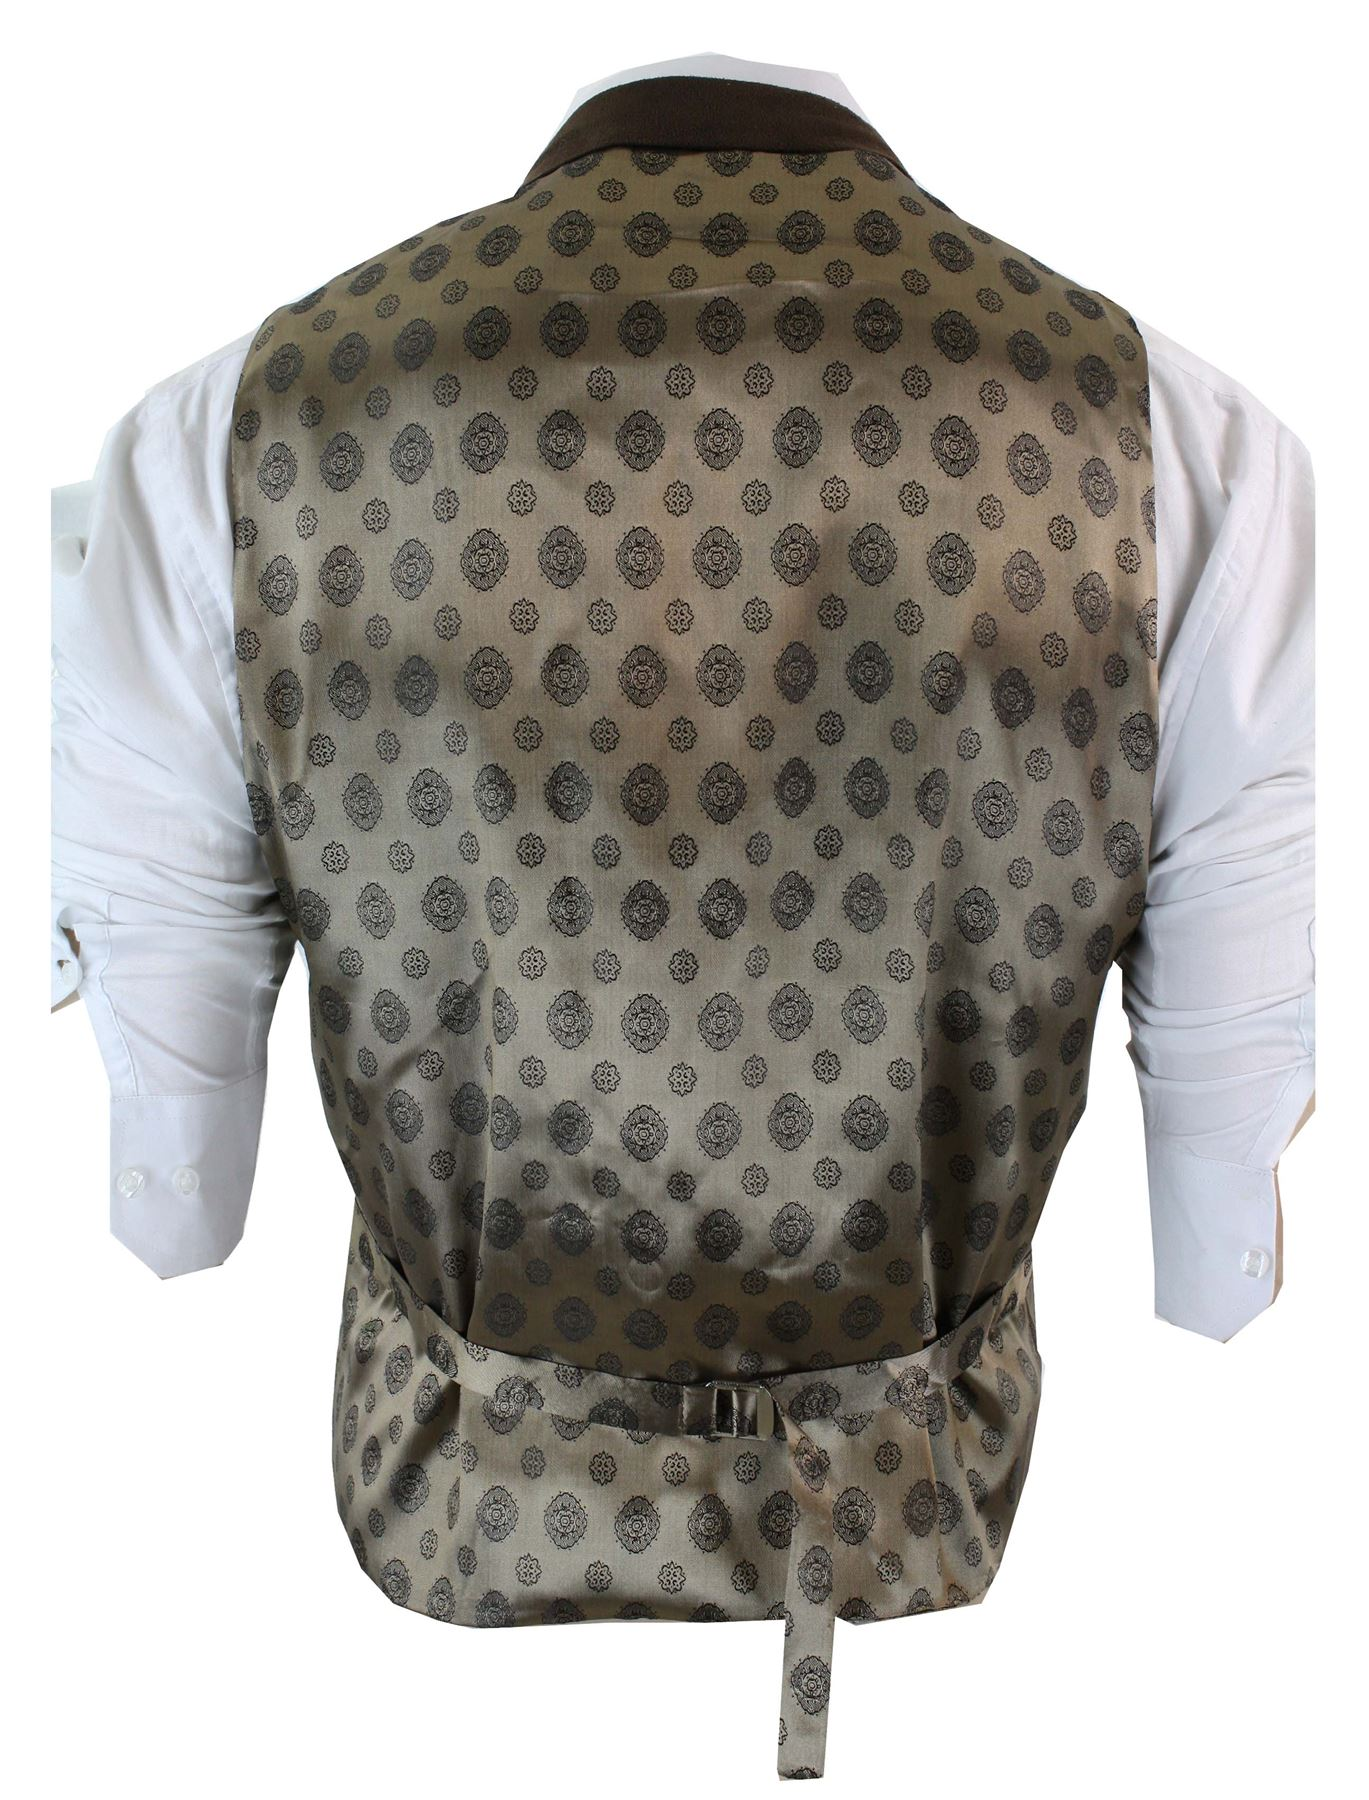 Gilet-homme-veston-vintage-tweed-a-chevrons-marron-noir-creme-gris-coupe-cintree